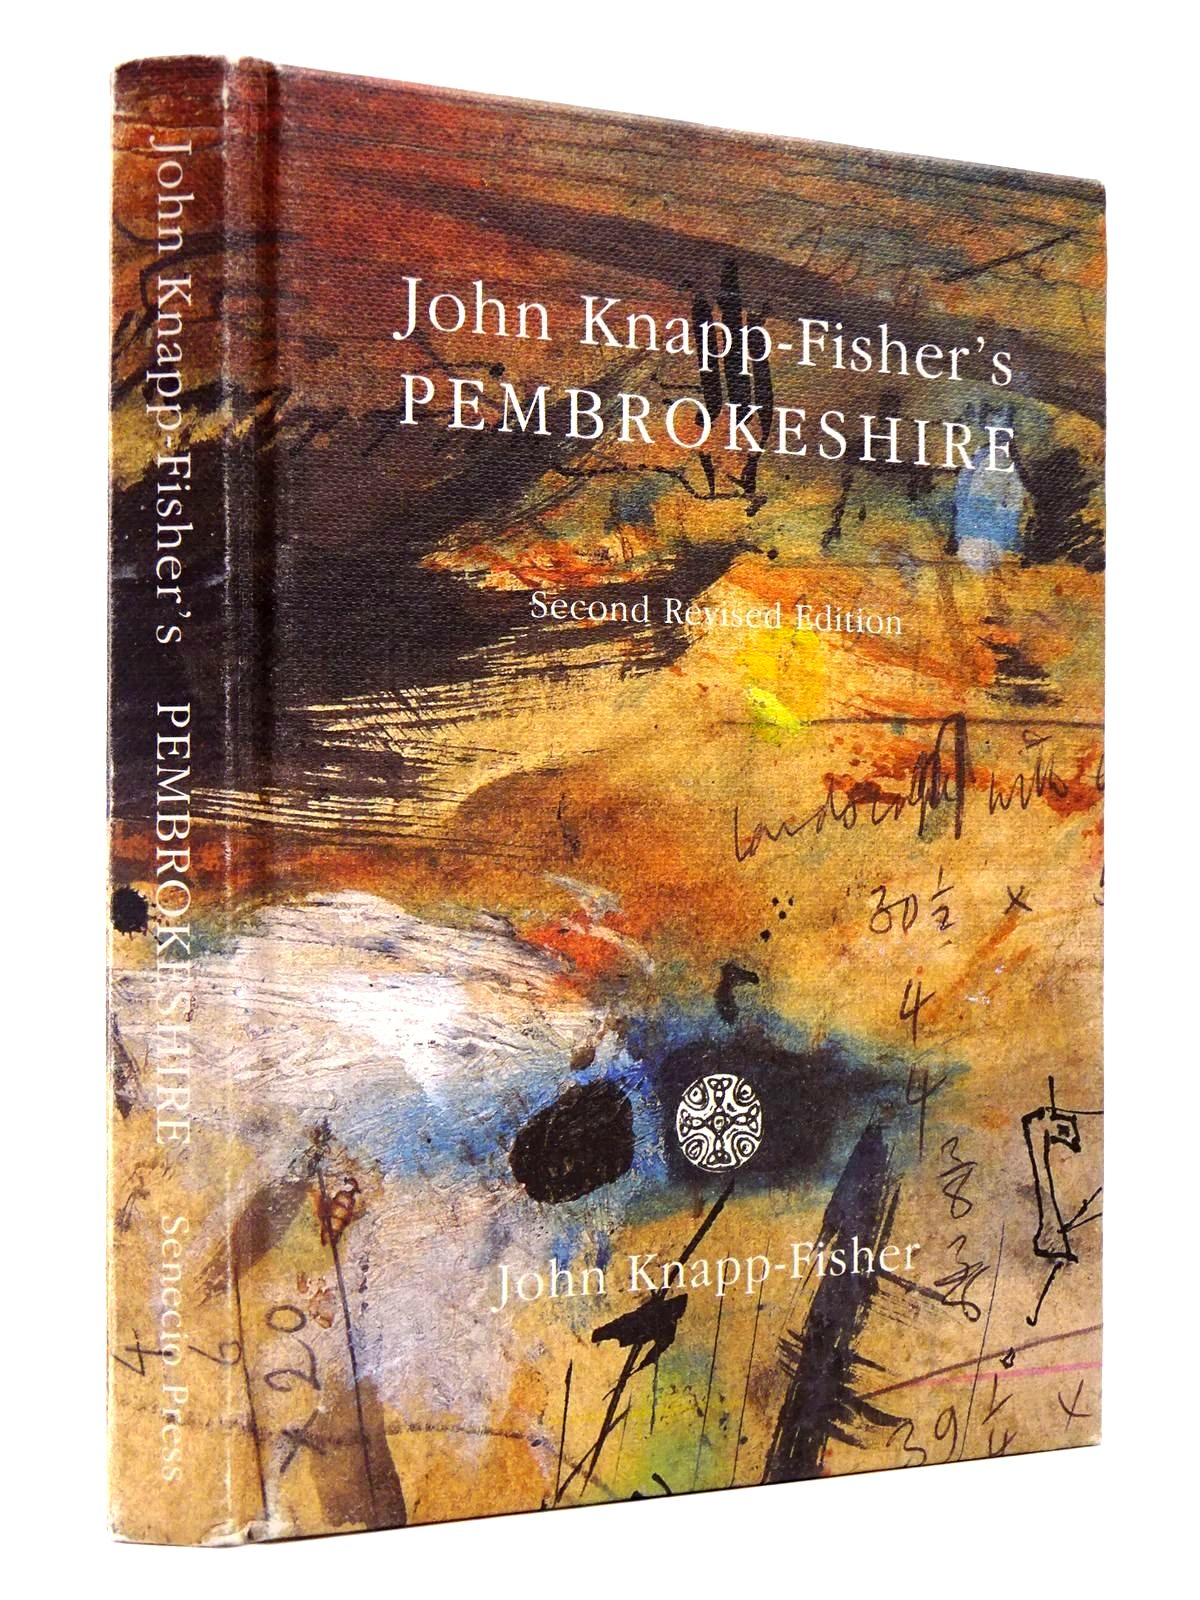 Photo of JOHN KNAPP-FISHER'S PEMBROKESHIRE written by Knapp-Fisher, John illustrated by Knapp-Fisher, John published by The Senecio Press (STOCK CODE: 2129948)  for sale by Stella & Rose's Books